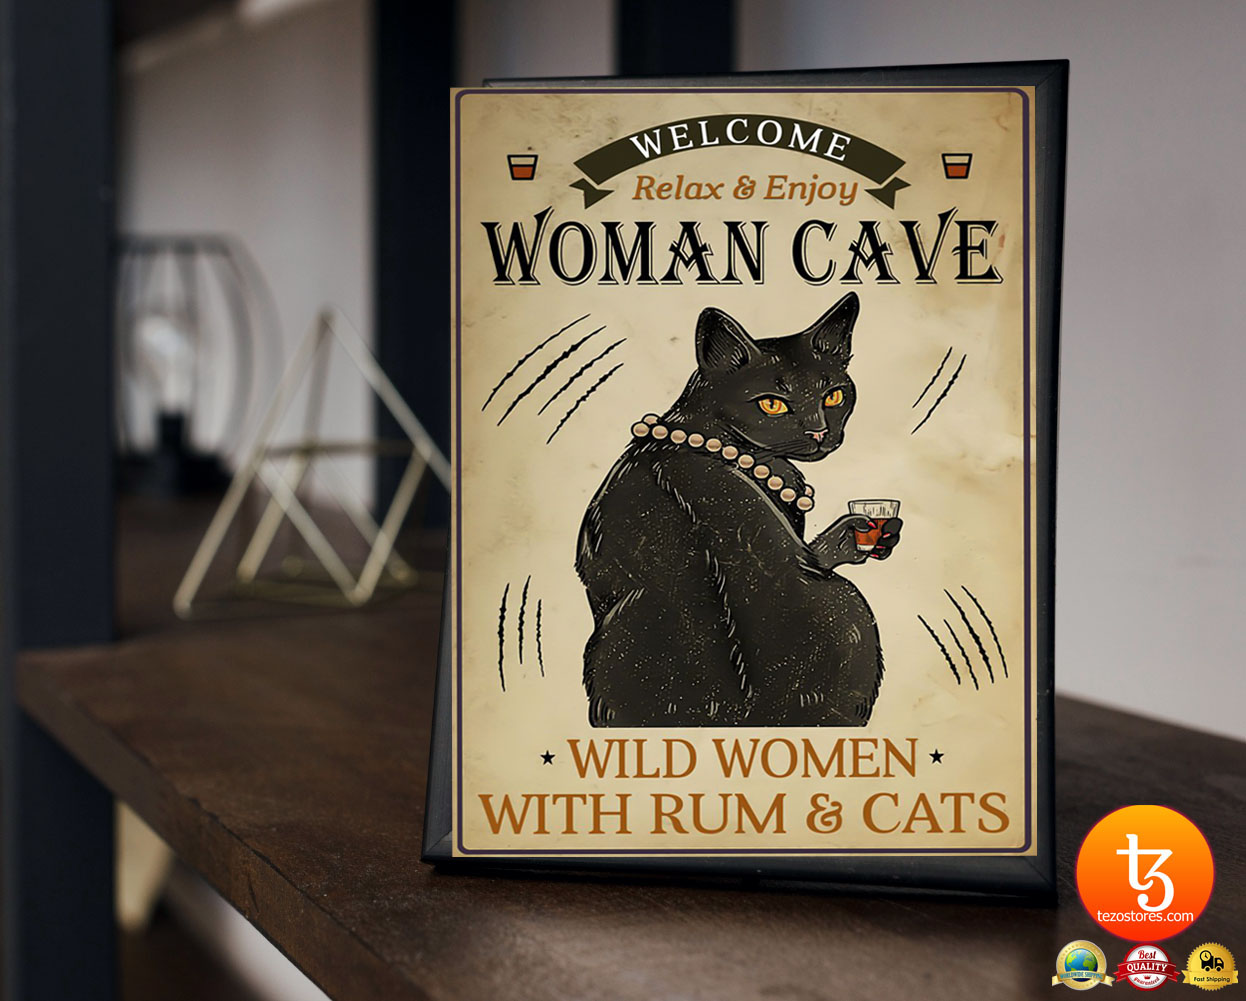 Welcome relax enjoy woman cave will women with rum and cats poster 23